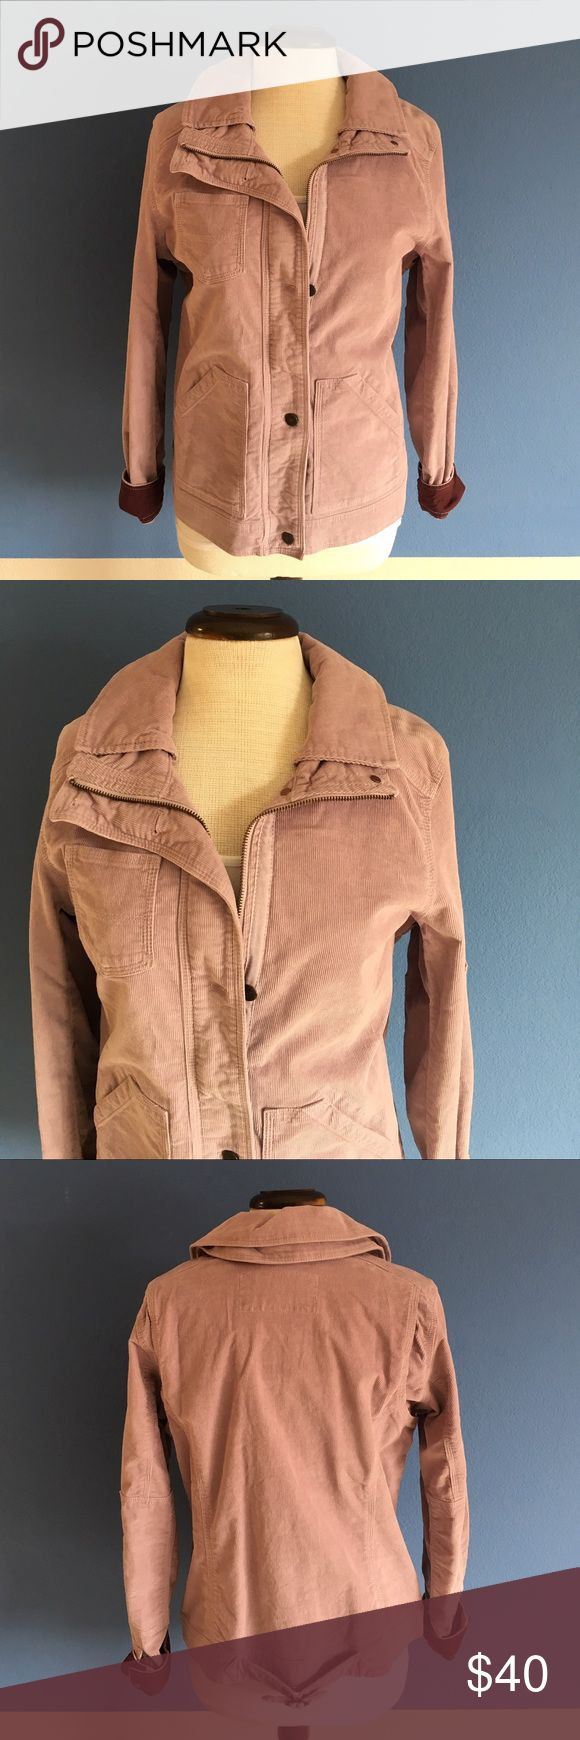 """Eddie Bauer Lavender Corduroy Jacket This jacket is cute and fun.  Perfect for any occasion. Two side pockets and one breast pocket on the front. Pair with jeans. Material:  98% Cotton/2% Spandex. Measurements (Flat): Length - 25""""/Bust - 19""""/Waist - 18.5"""" Eddie Bauer Jackets & Coats"""